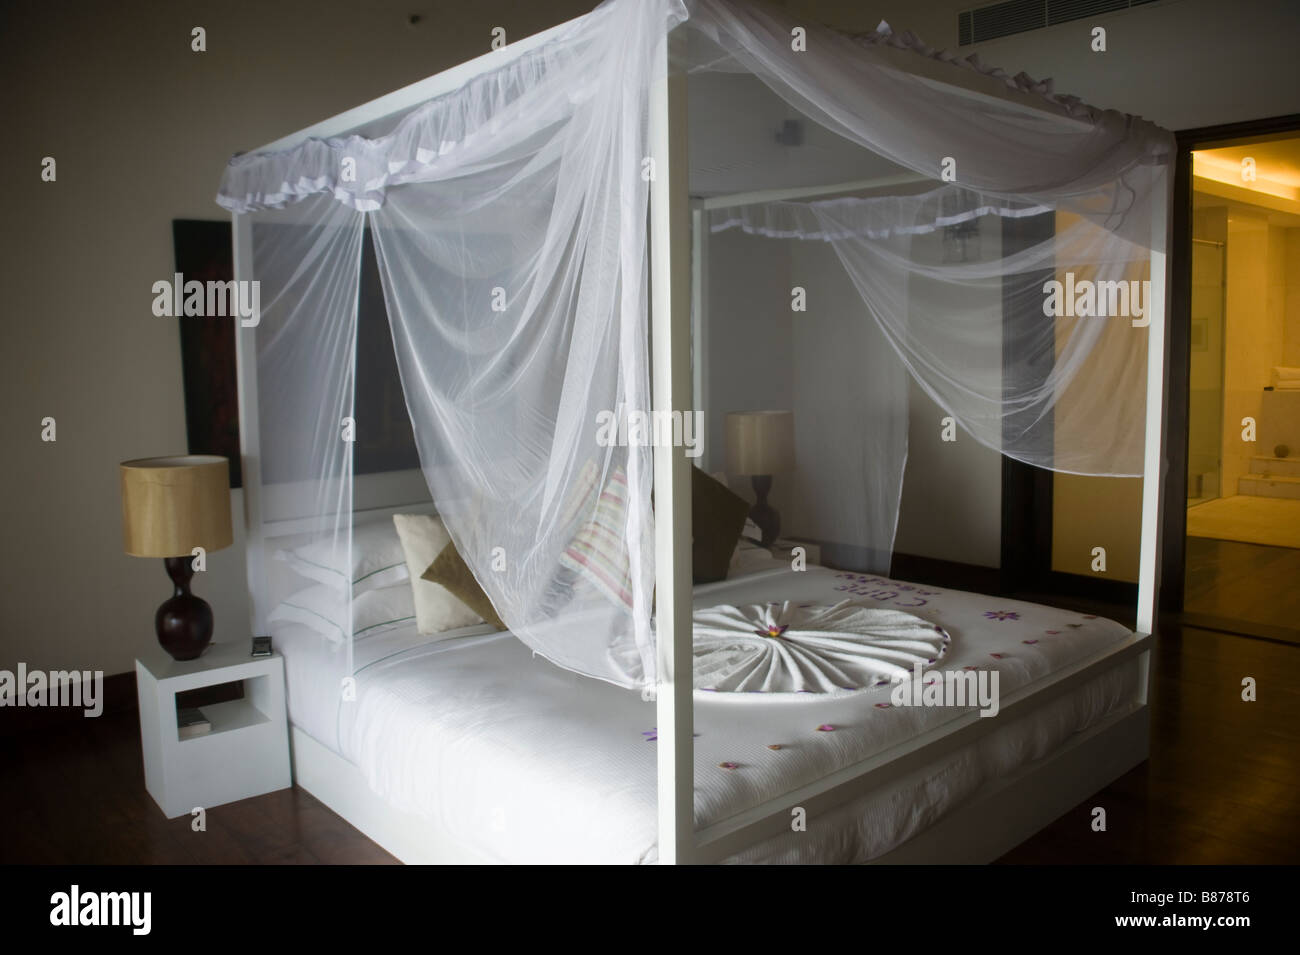 Four post bed in hotel with mosquito net Sri Lanka 3697 - Stock Image